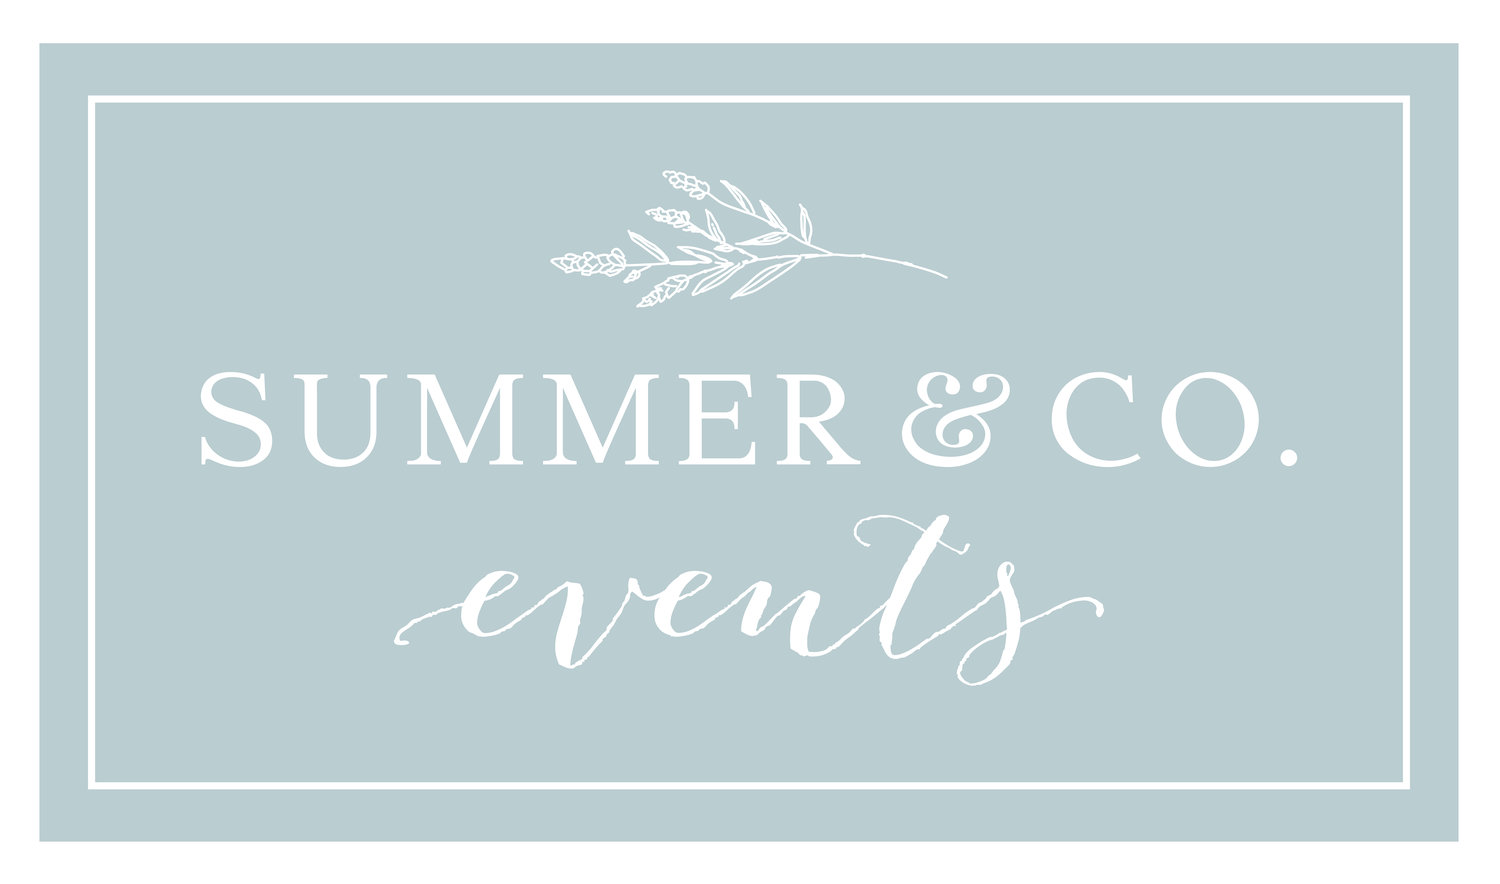 Summer & Co. Events